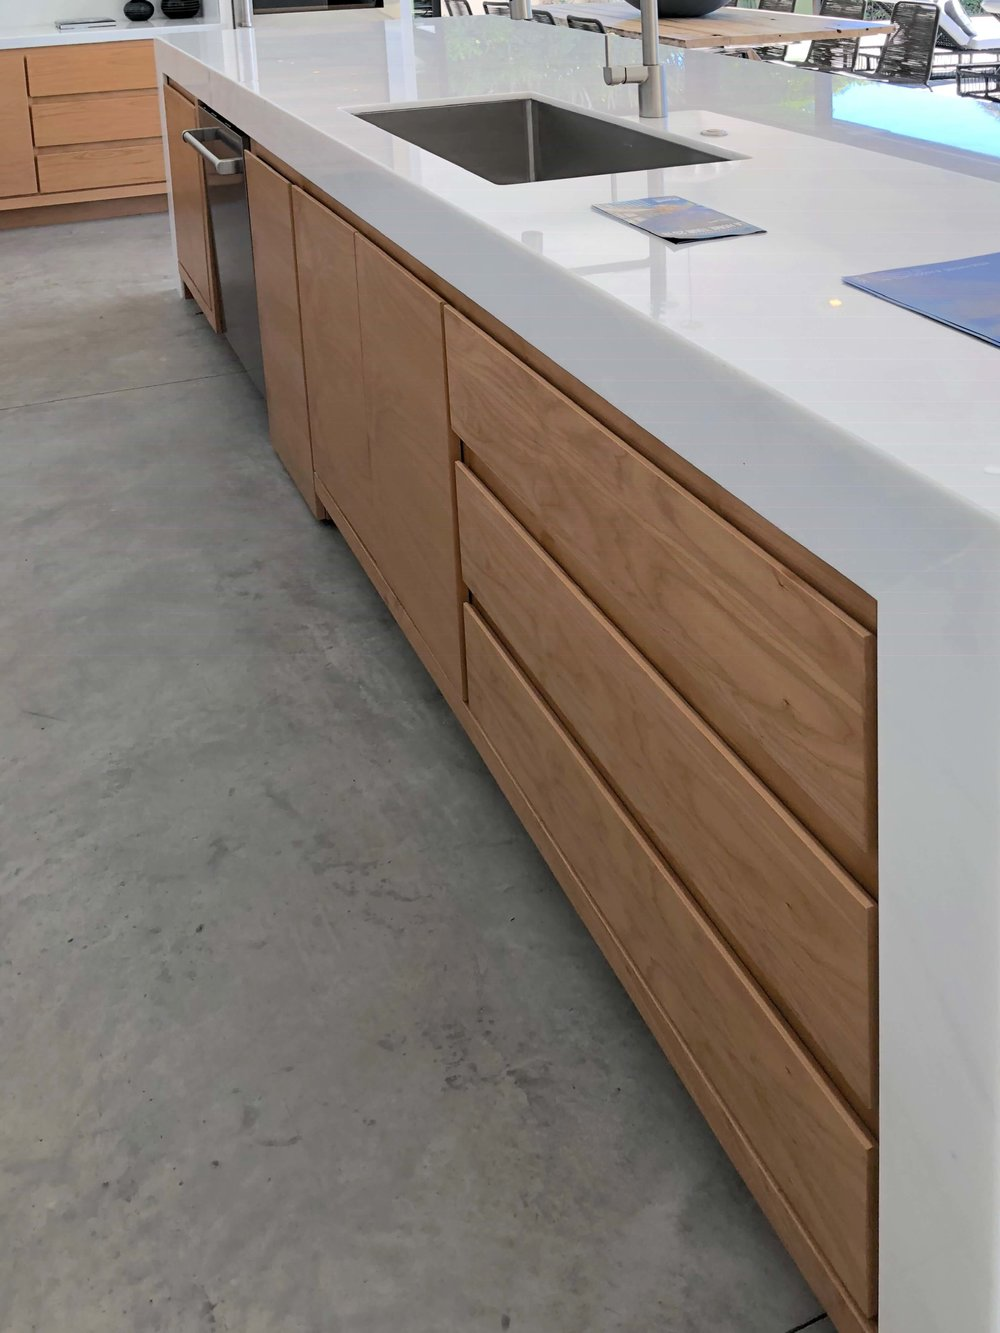 Large kitchen island in contemporary home - Dwell on Design's Fall Home Tour, Designer: Vitus Matare #kitchenideas #kitchendesign #kitchenisland